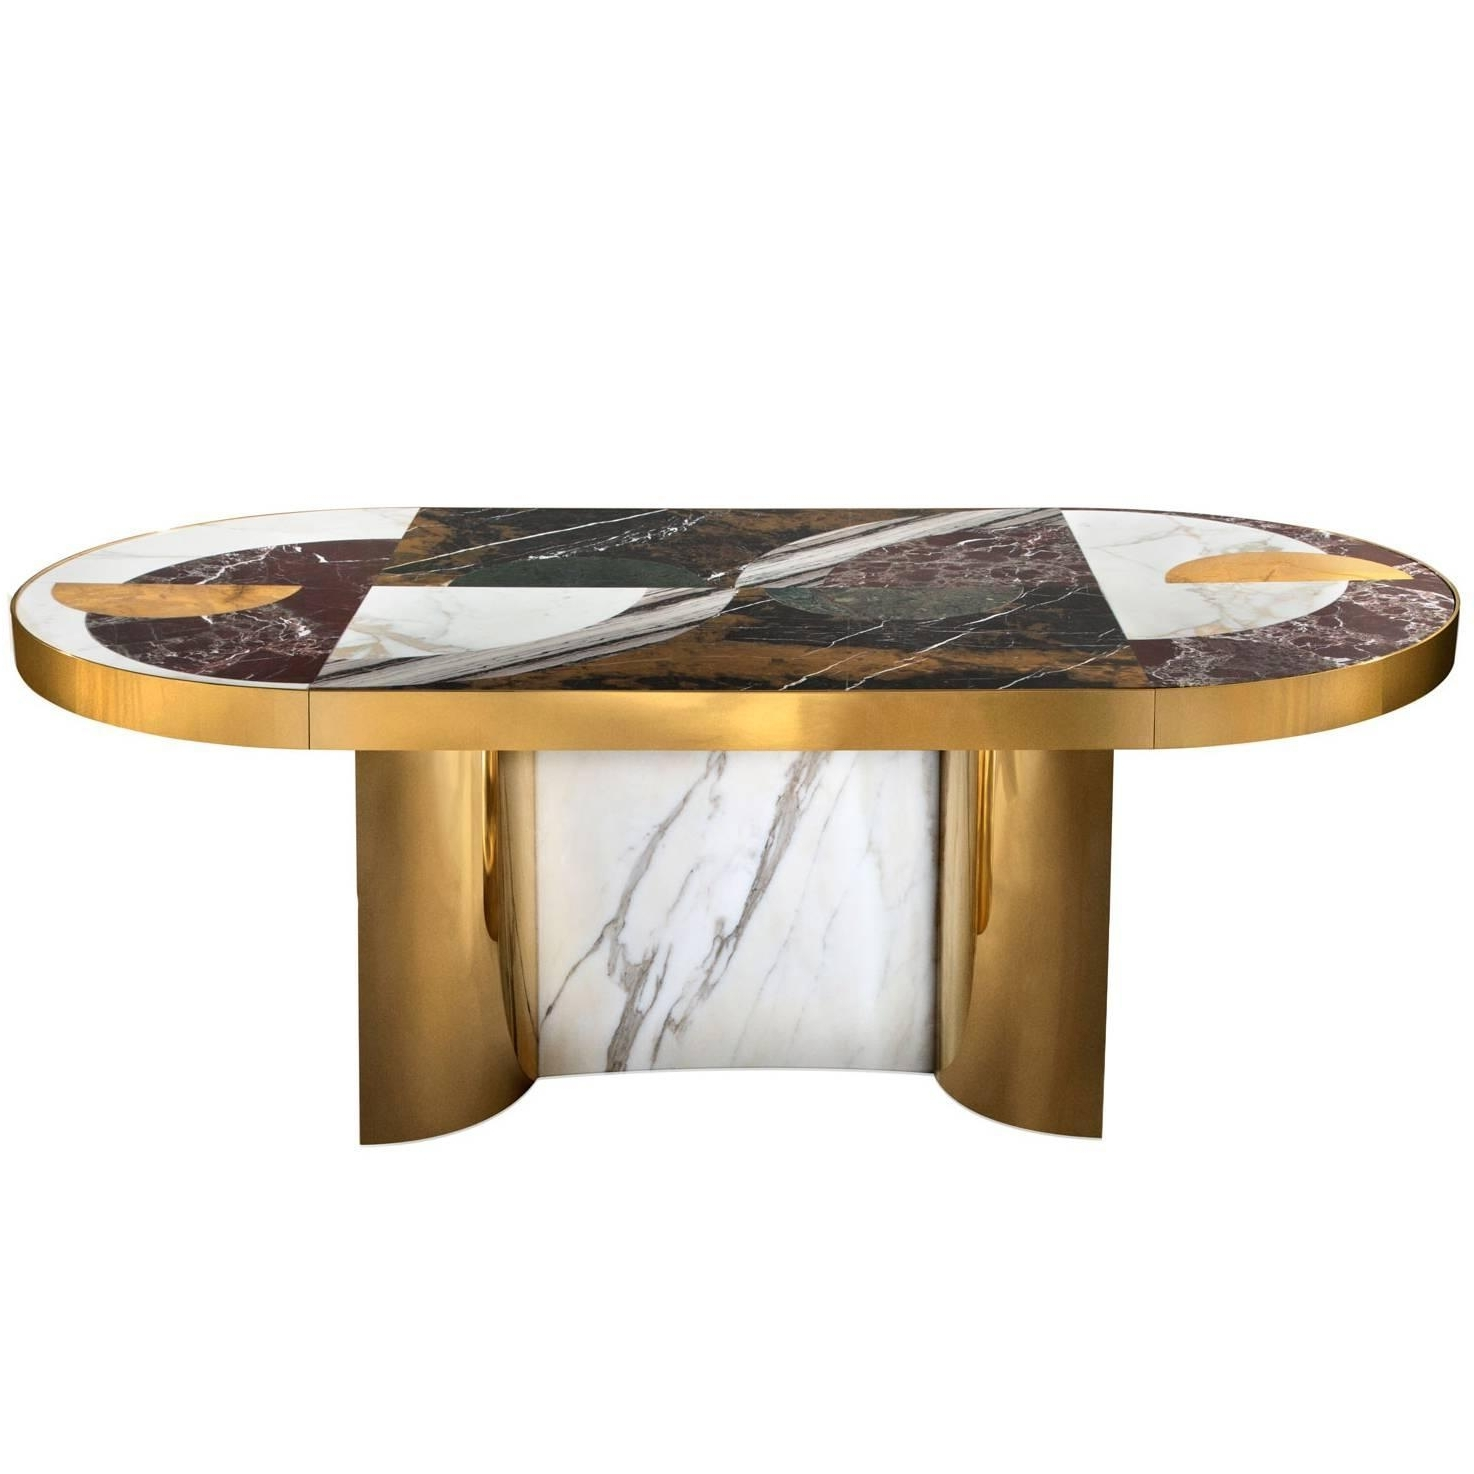 "Half Moon"" Marble And Brass Or Gold Plated Dining Table Designed With Recent Round Half Moon Dining Tables (View 11 of 25)"